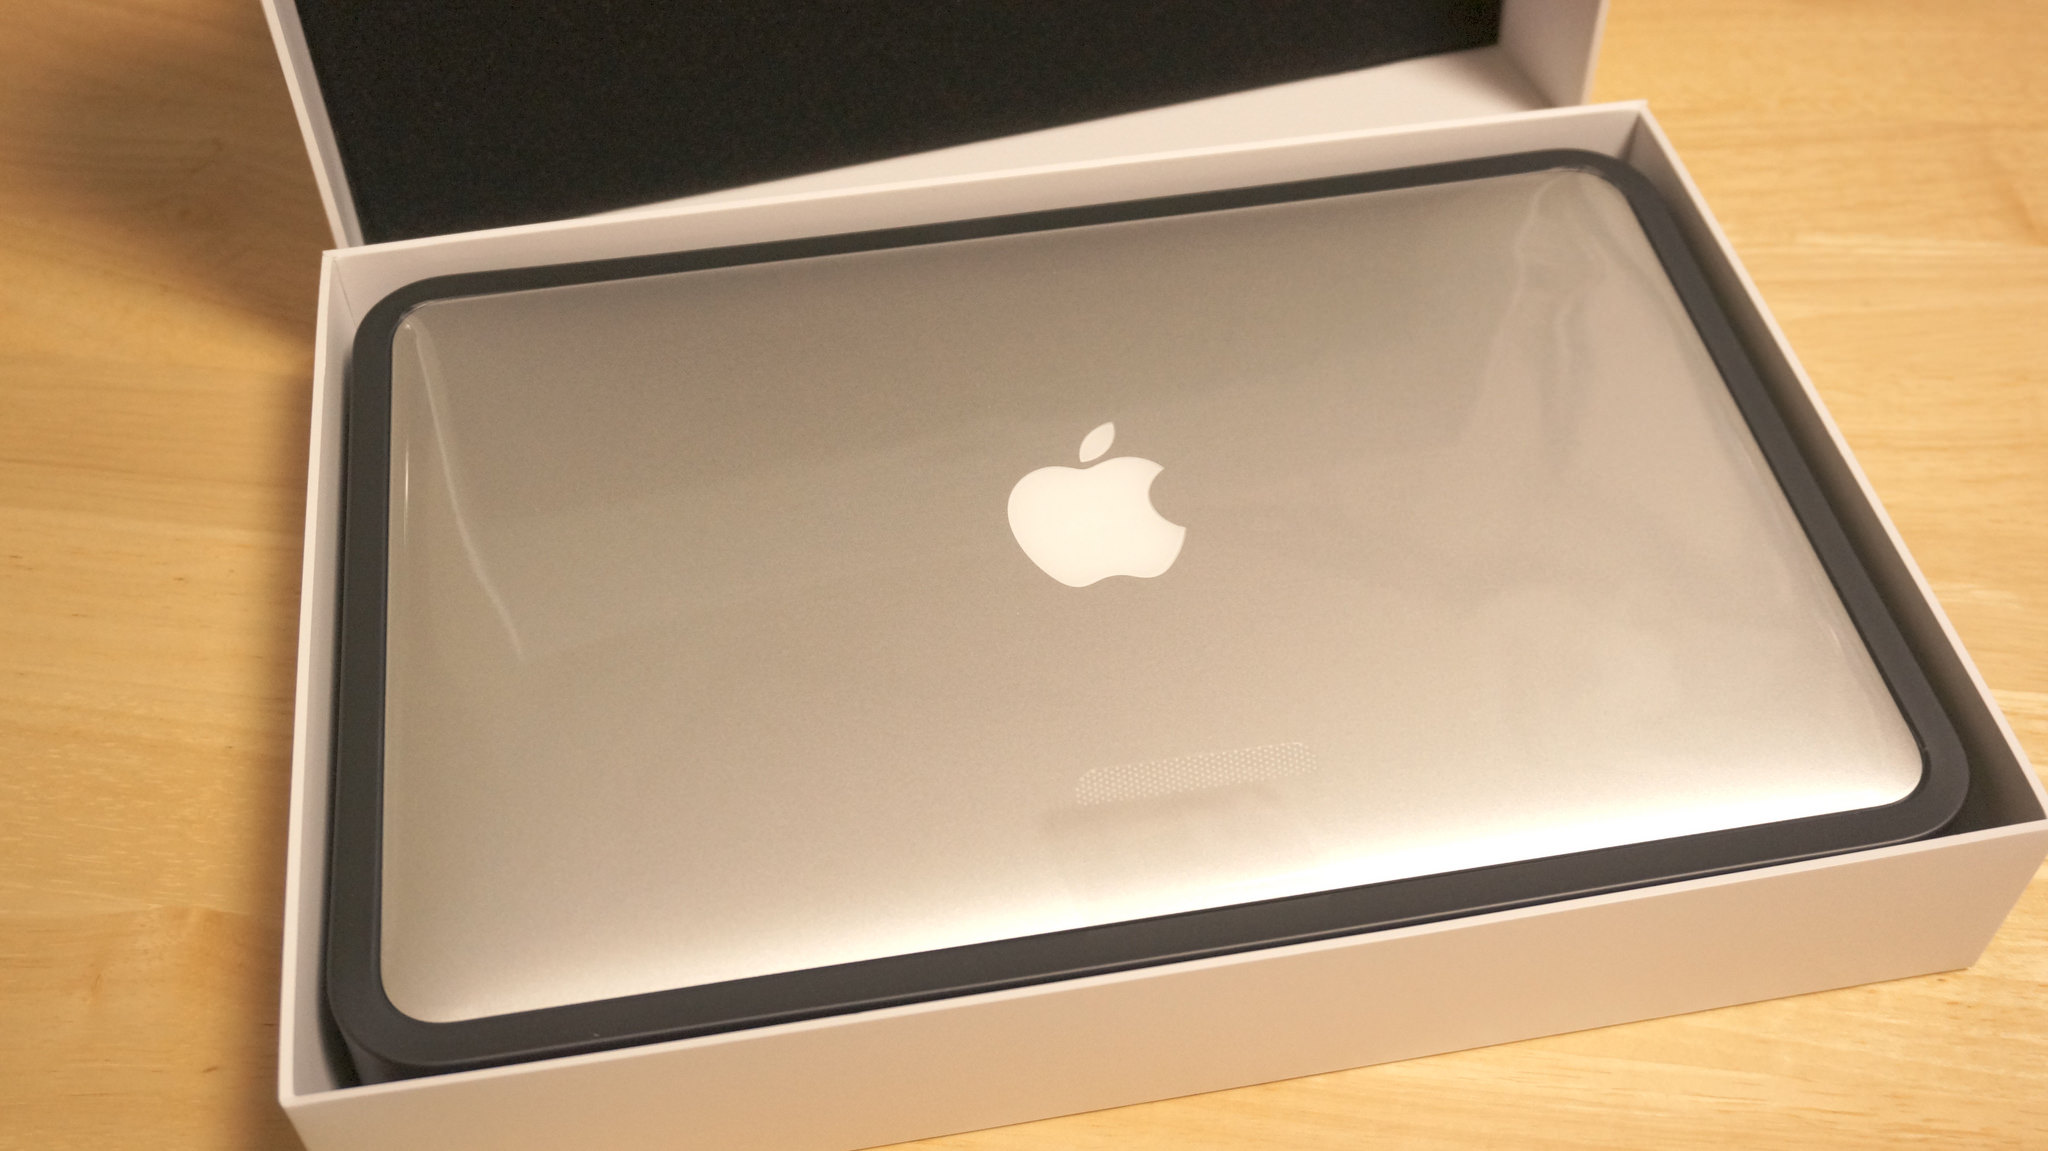 MacBookAir-11-inch-2014-early